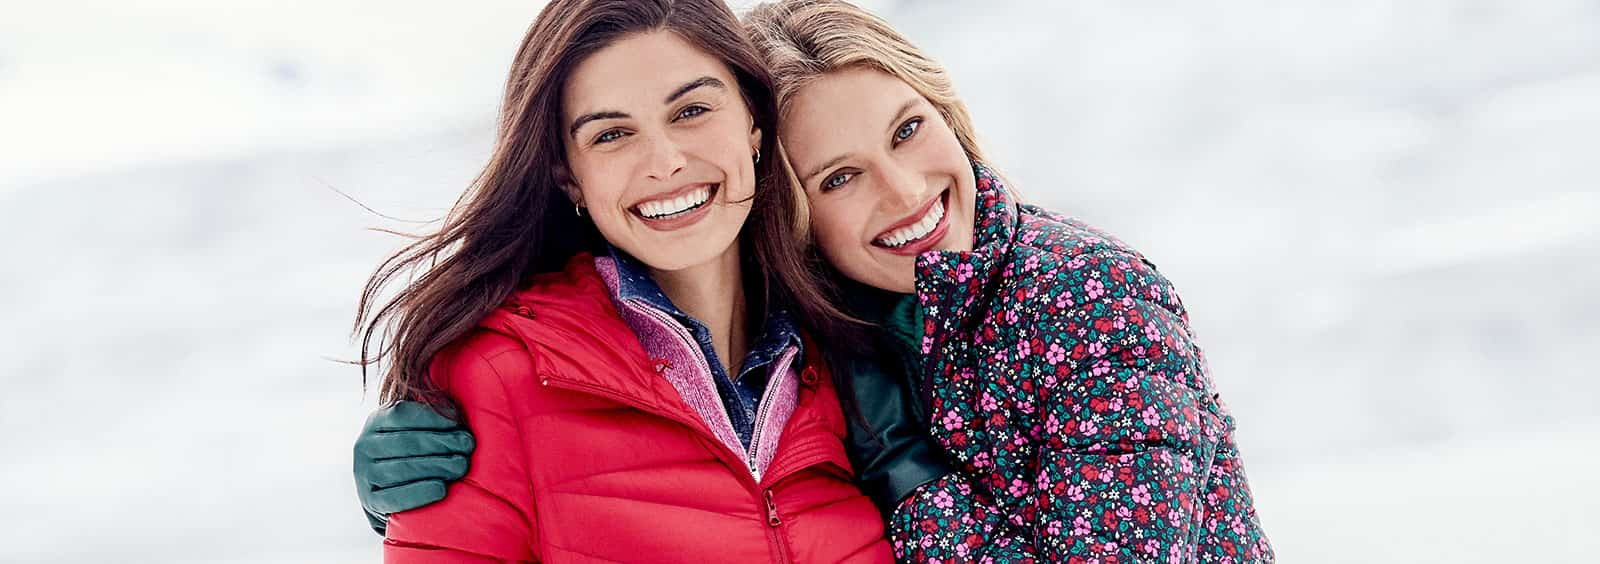 Women's Coats and Jackets for Fall-to-Winter Wear